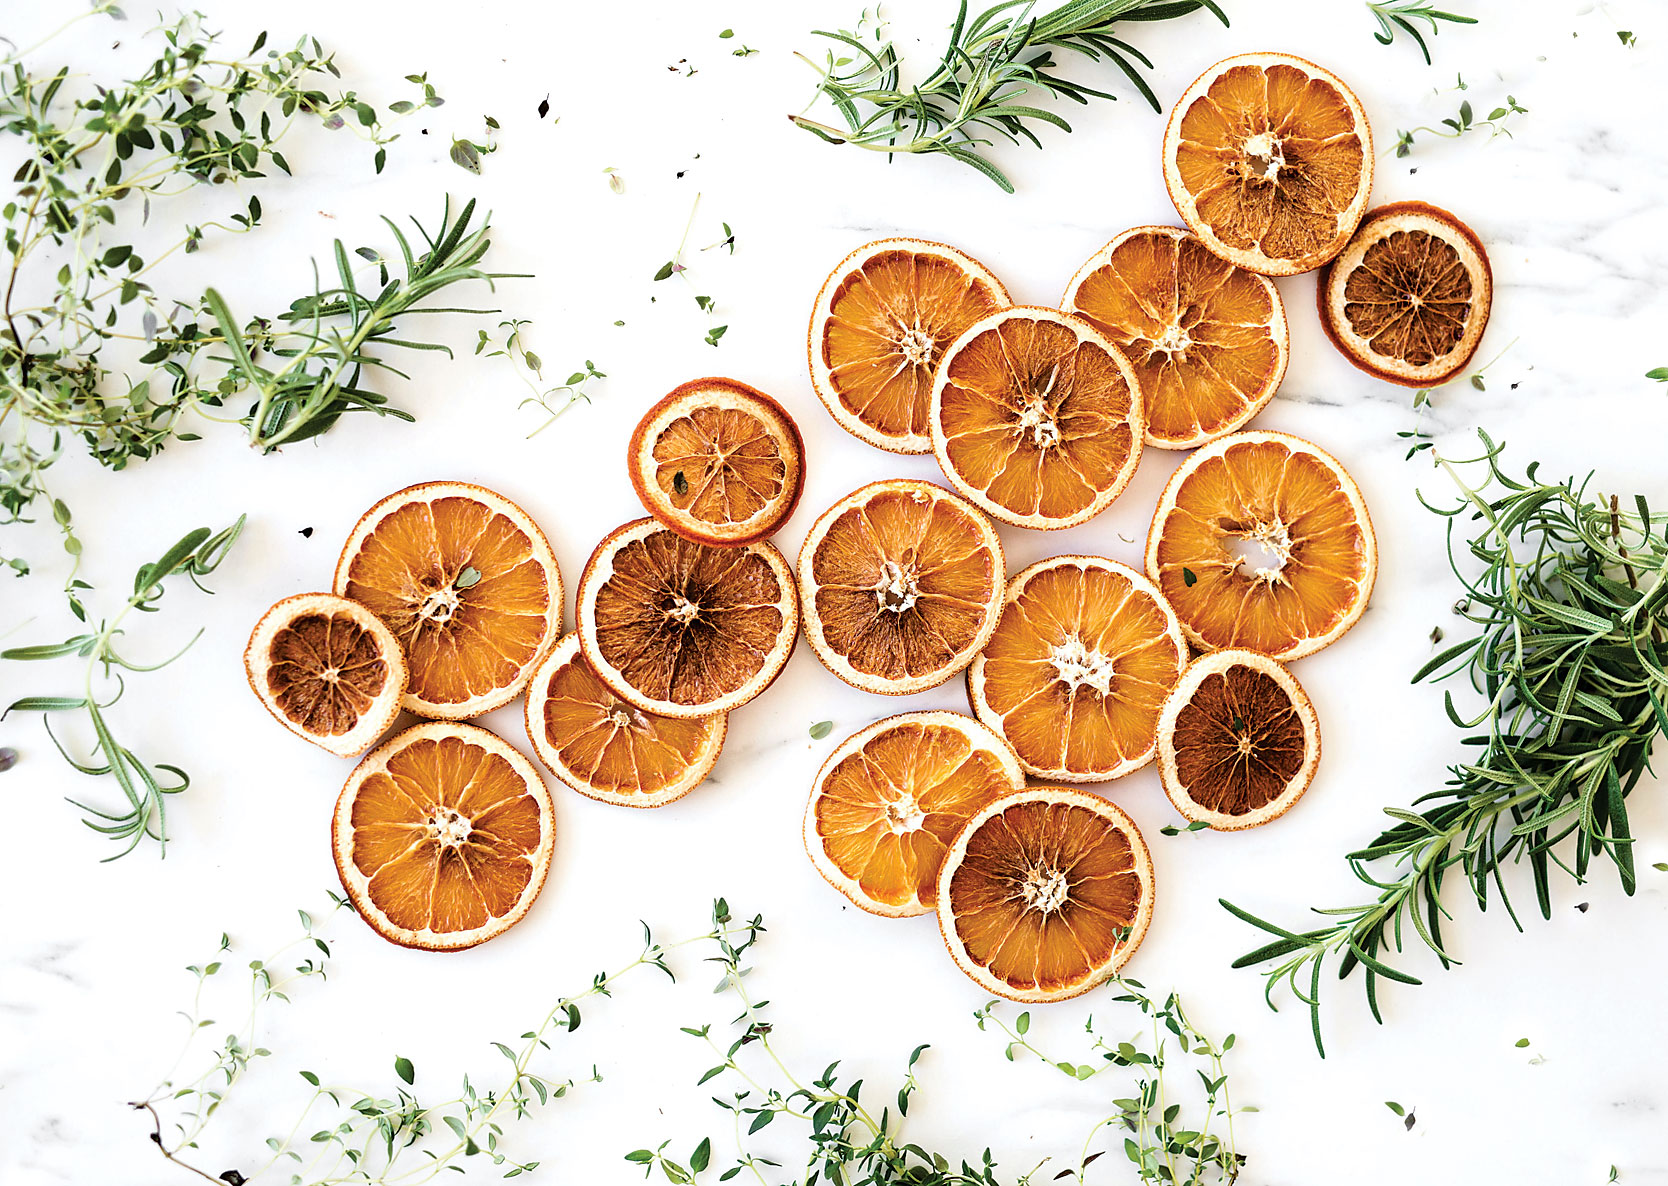 Dried orange slices and herbs spread on marble